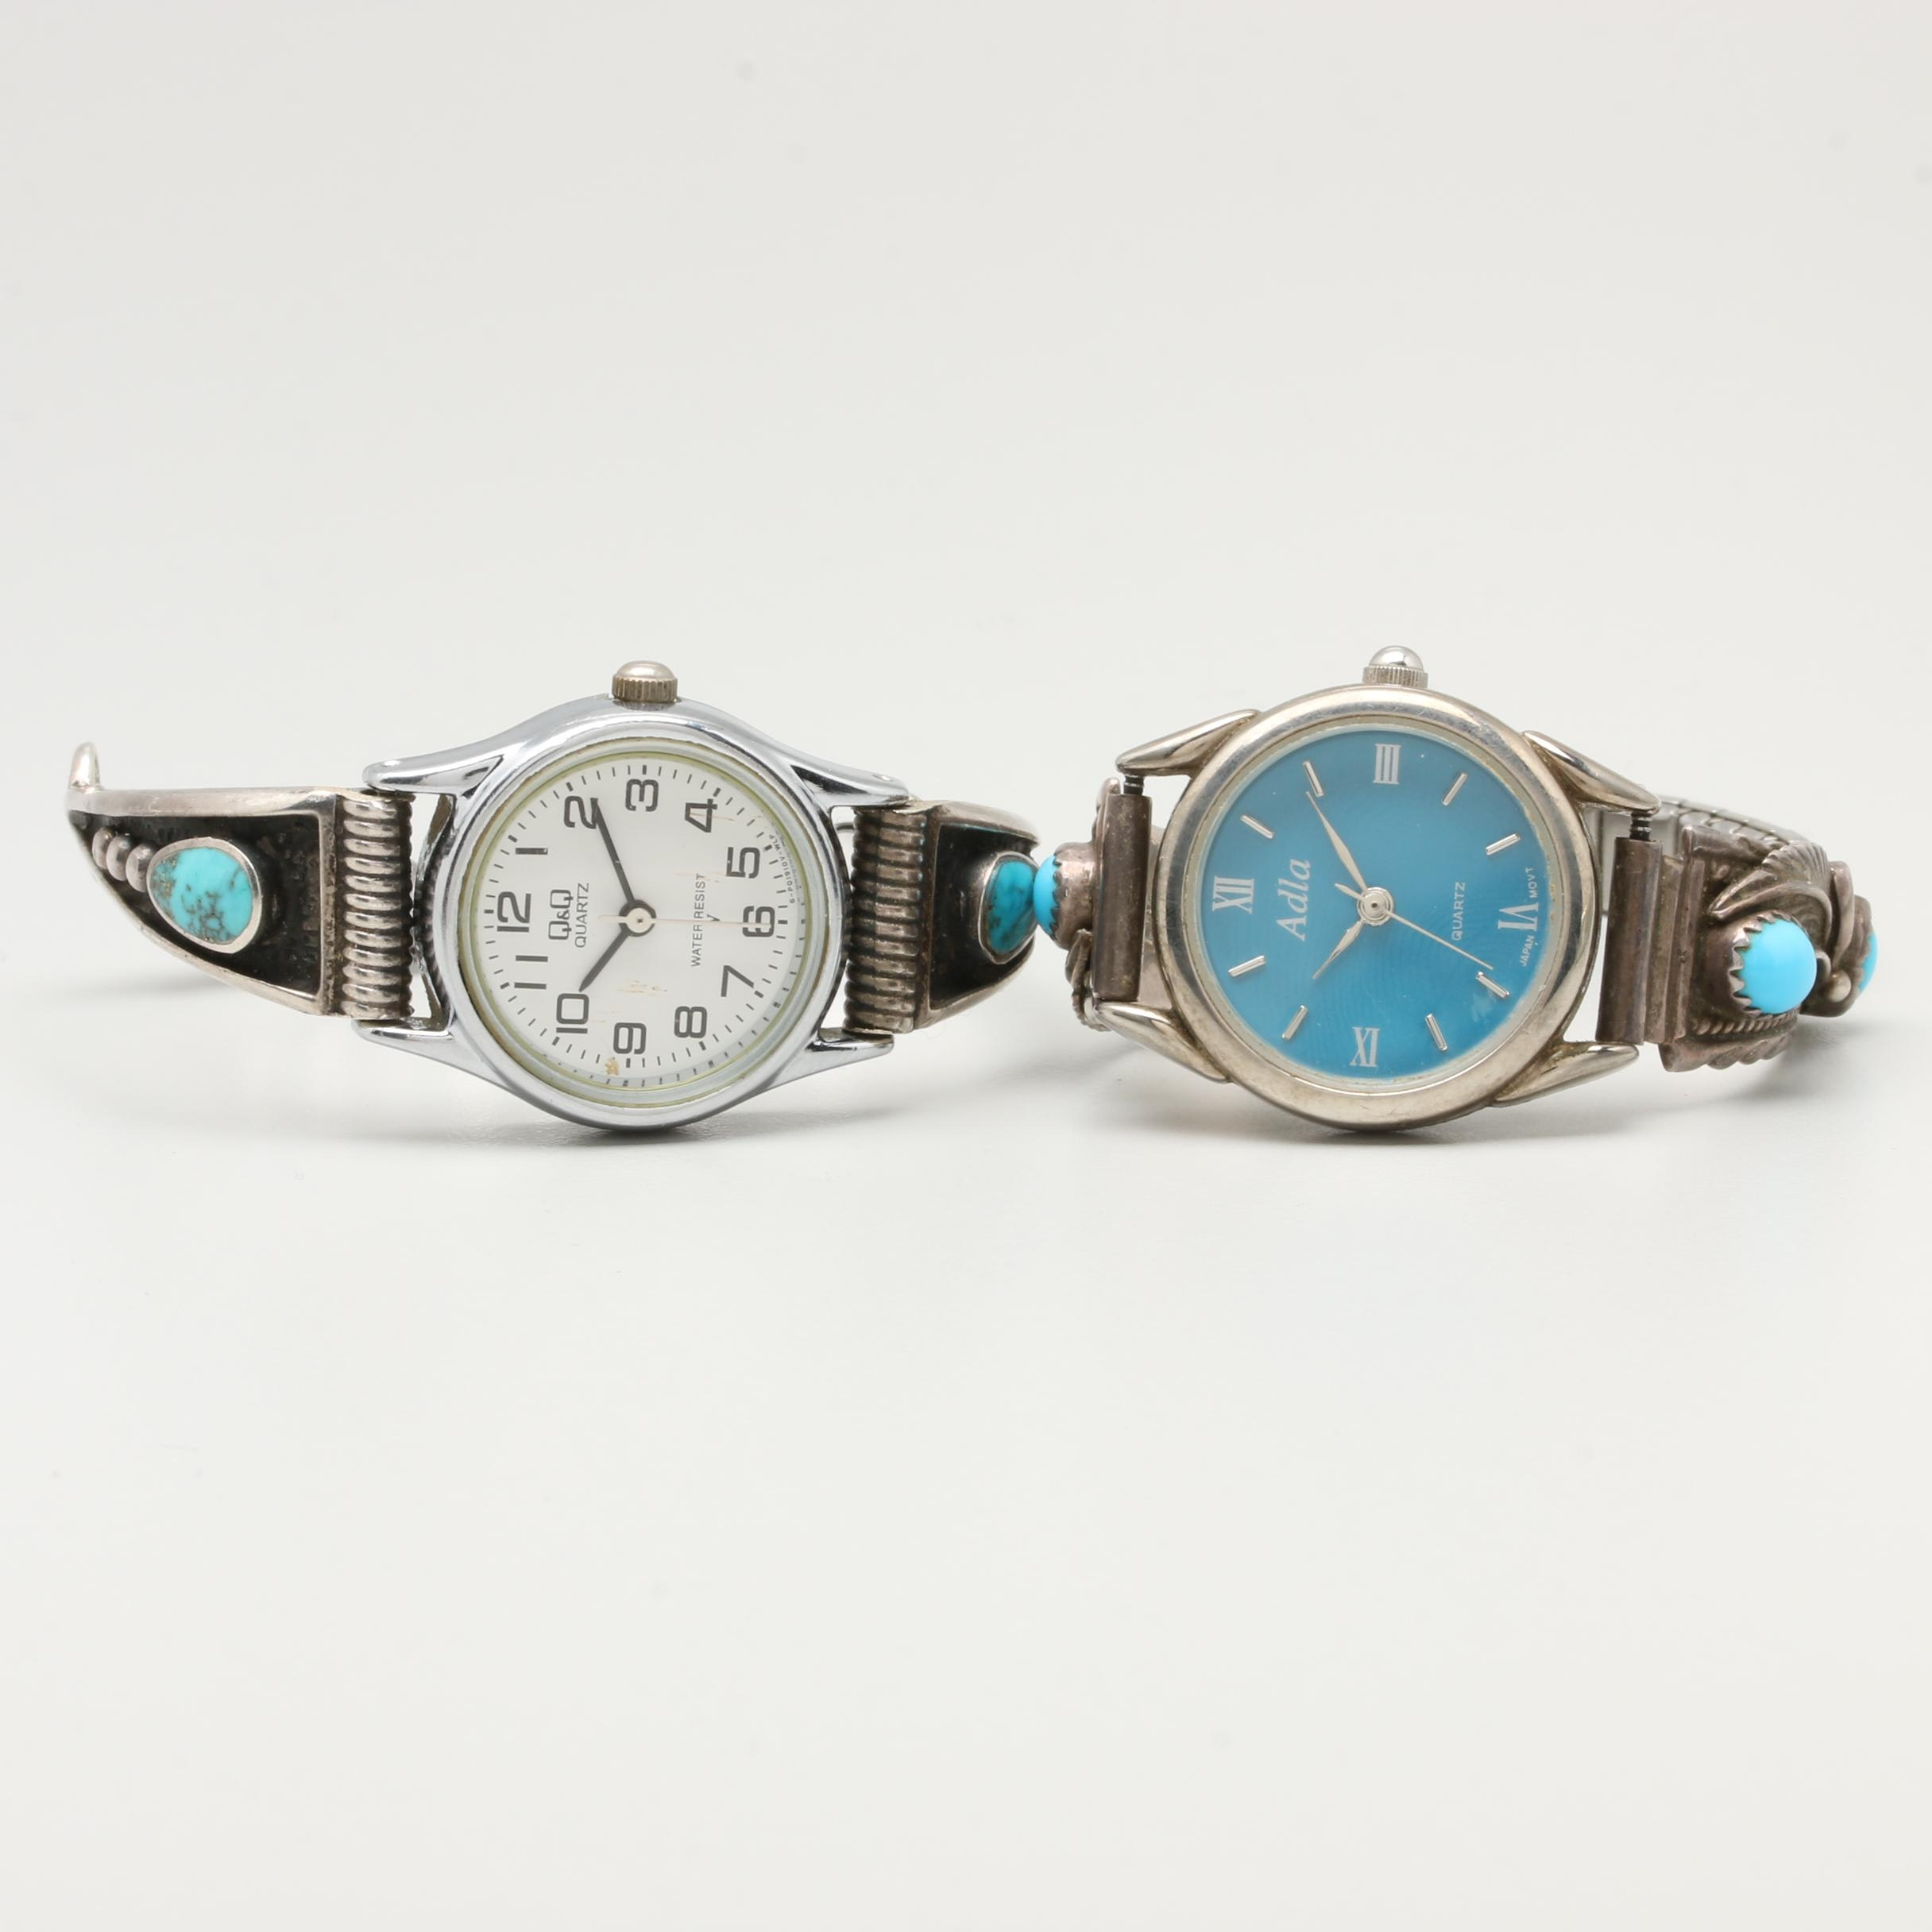 Sterling Silver and Silver Tone Turquoise Wristwatches Including Alda